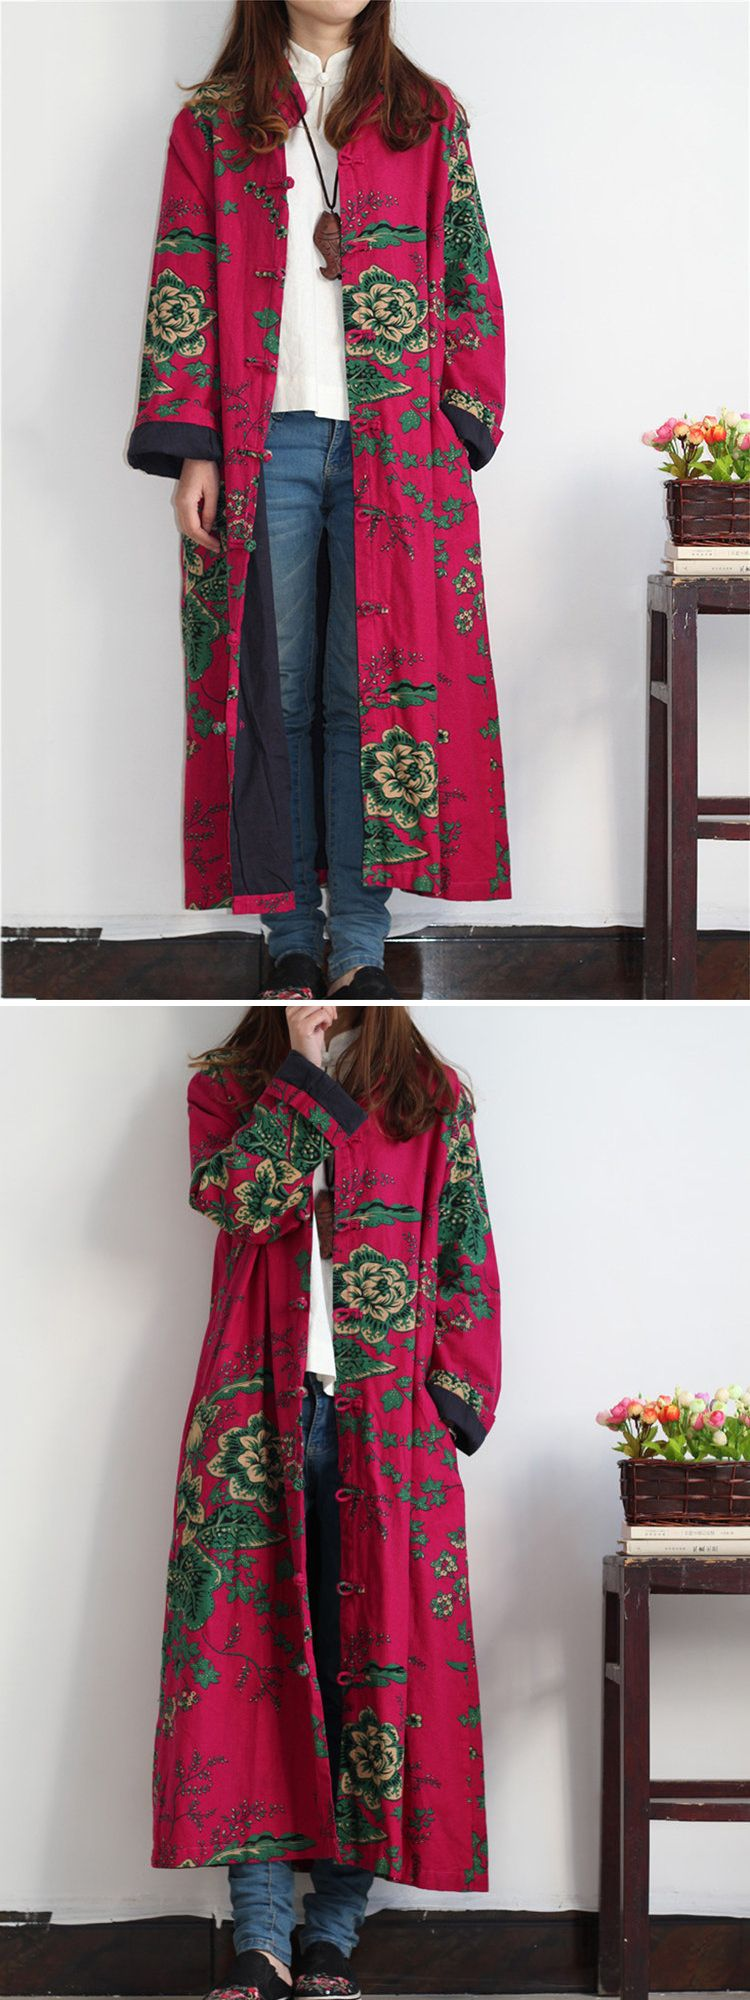 Onewe vintage women flower printed chinese frog long coat what to